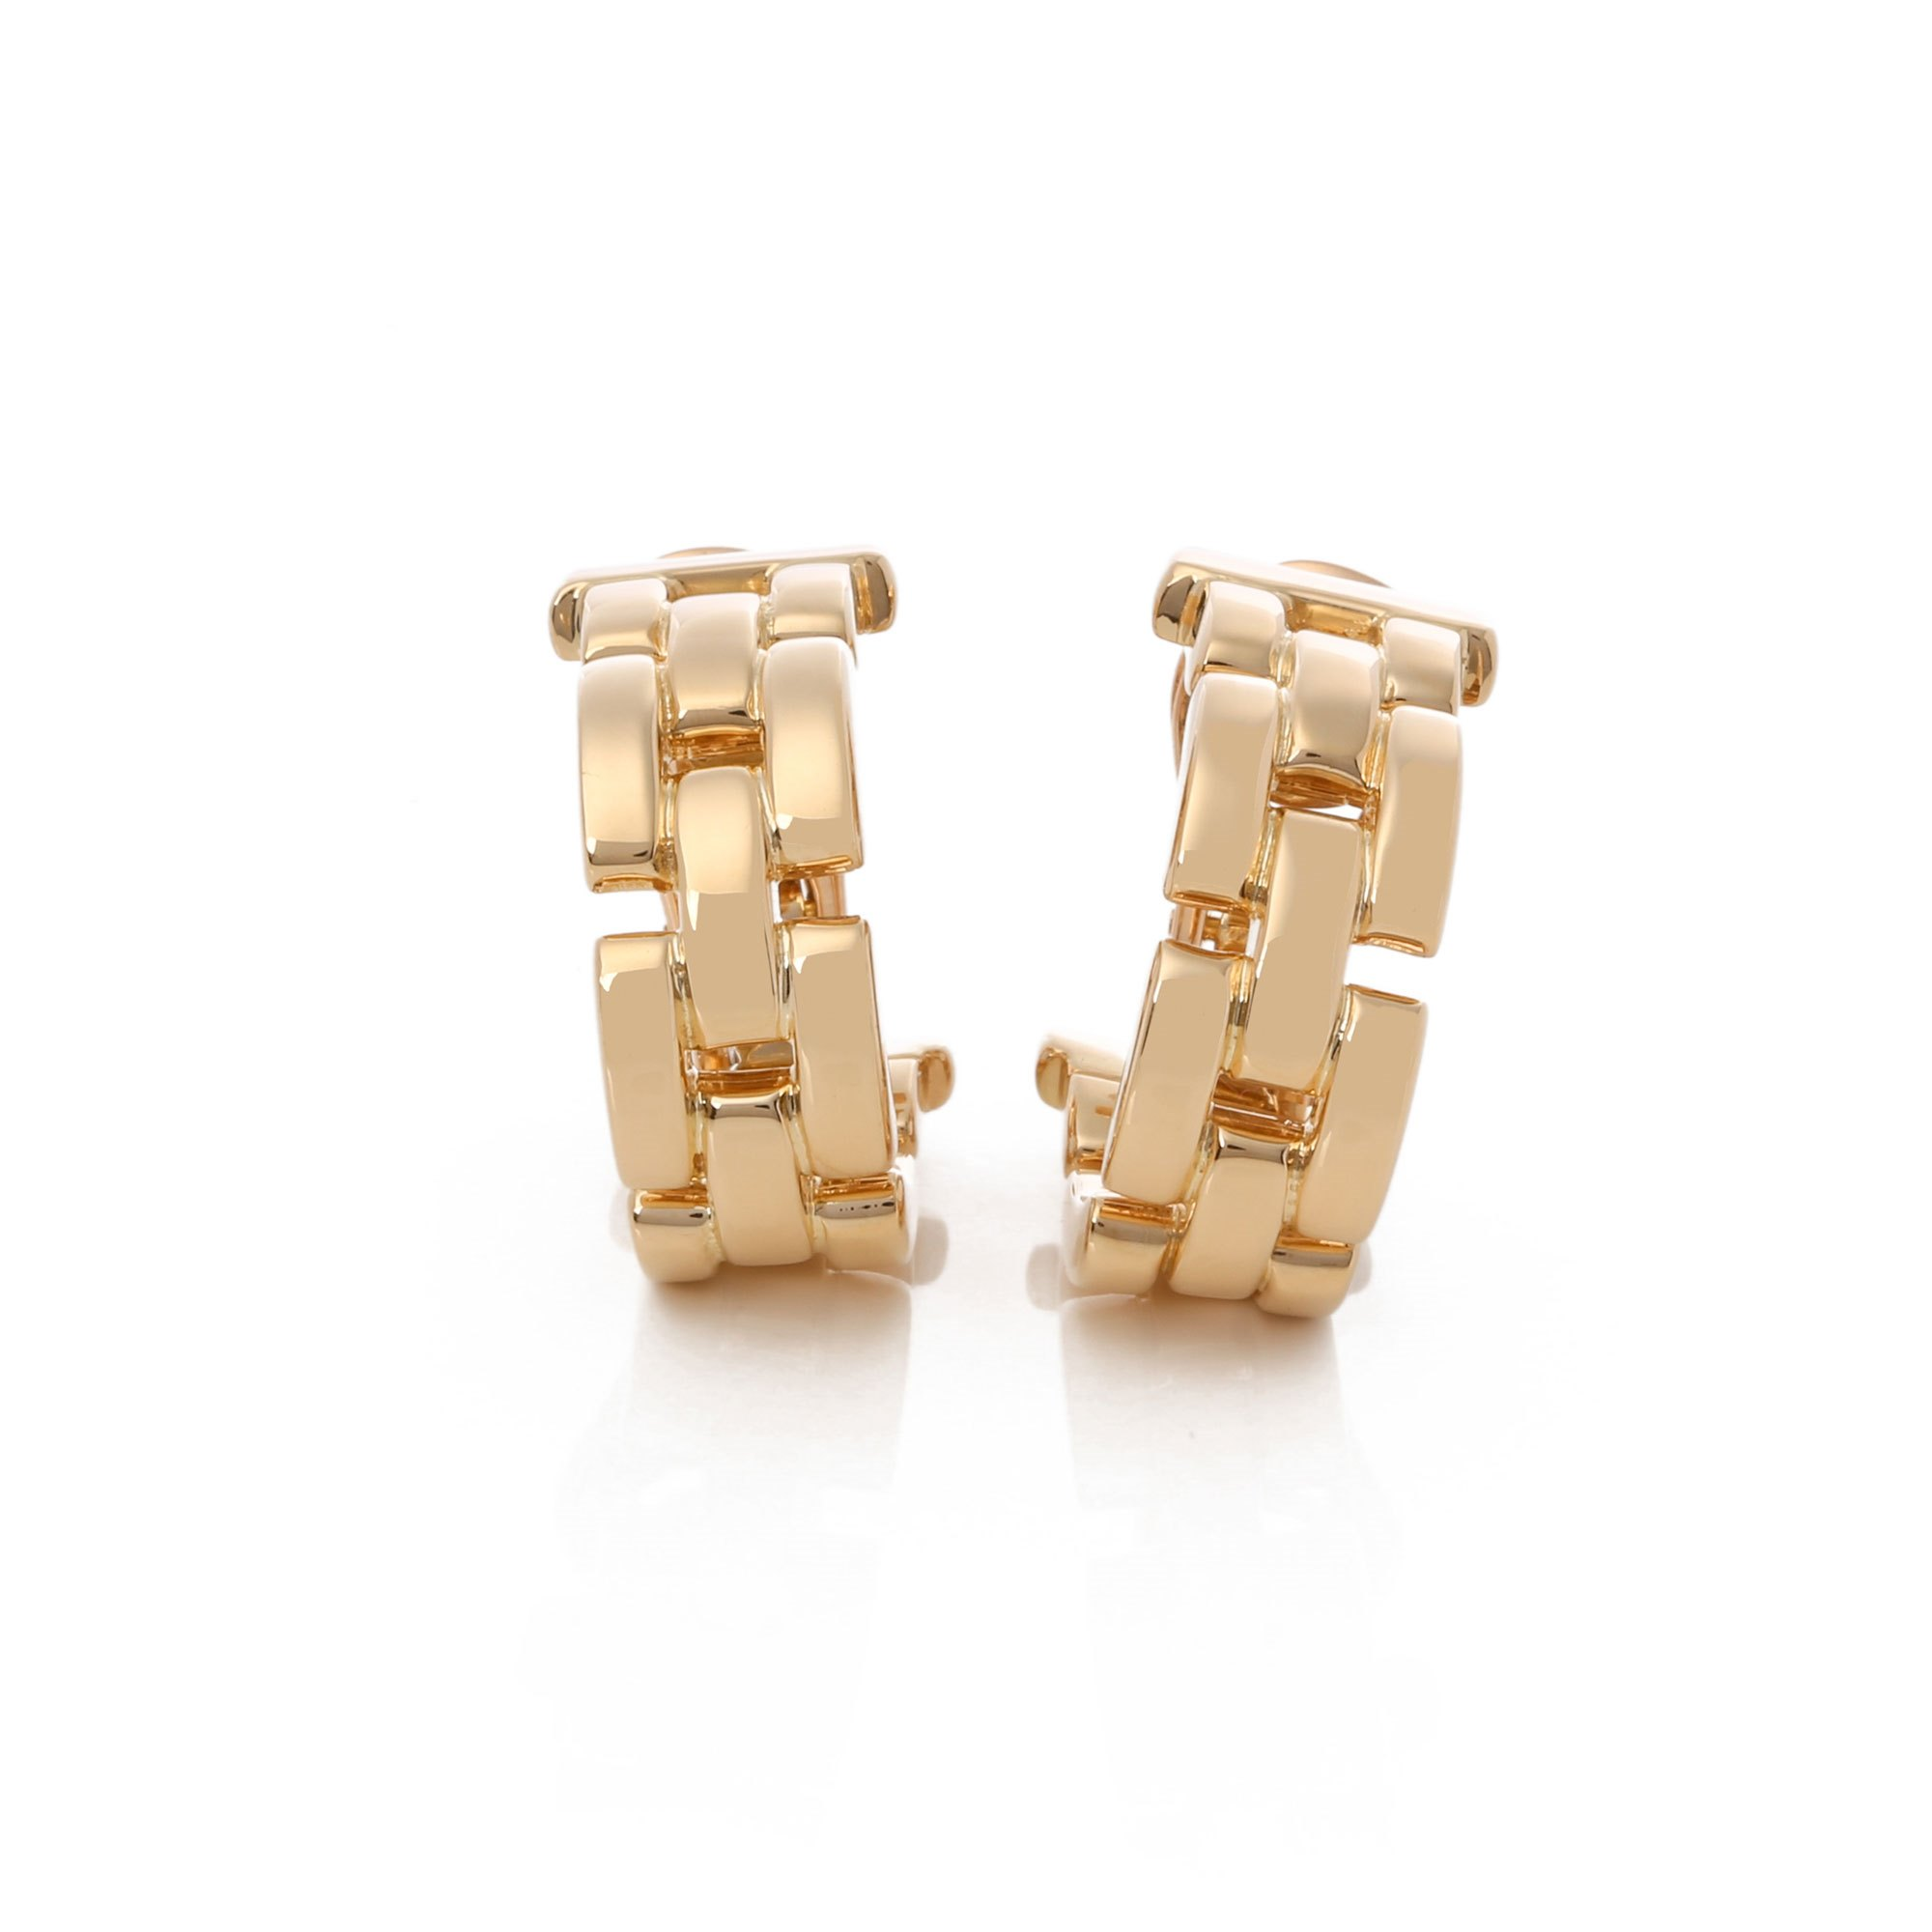 Cartier Maillon Panthere Earrings